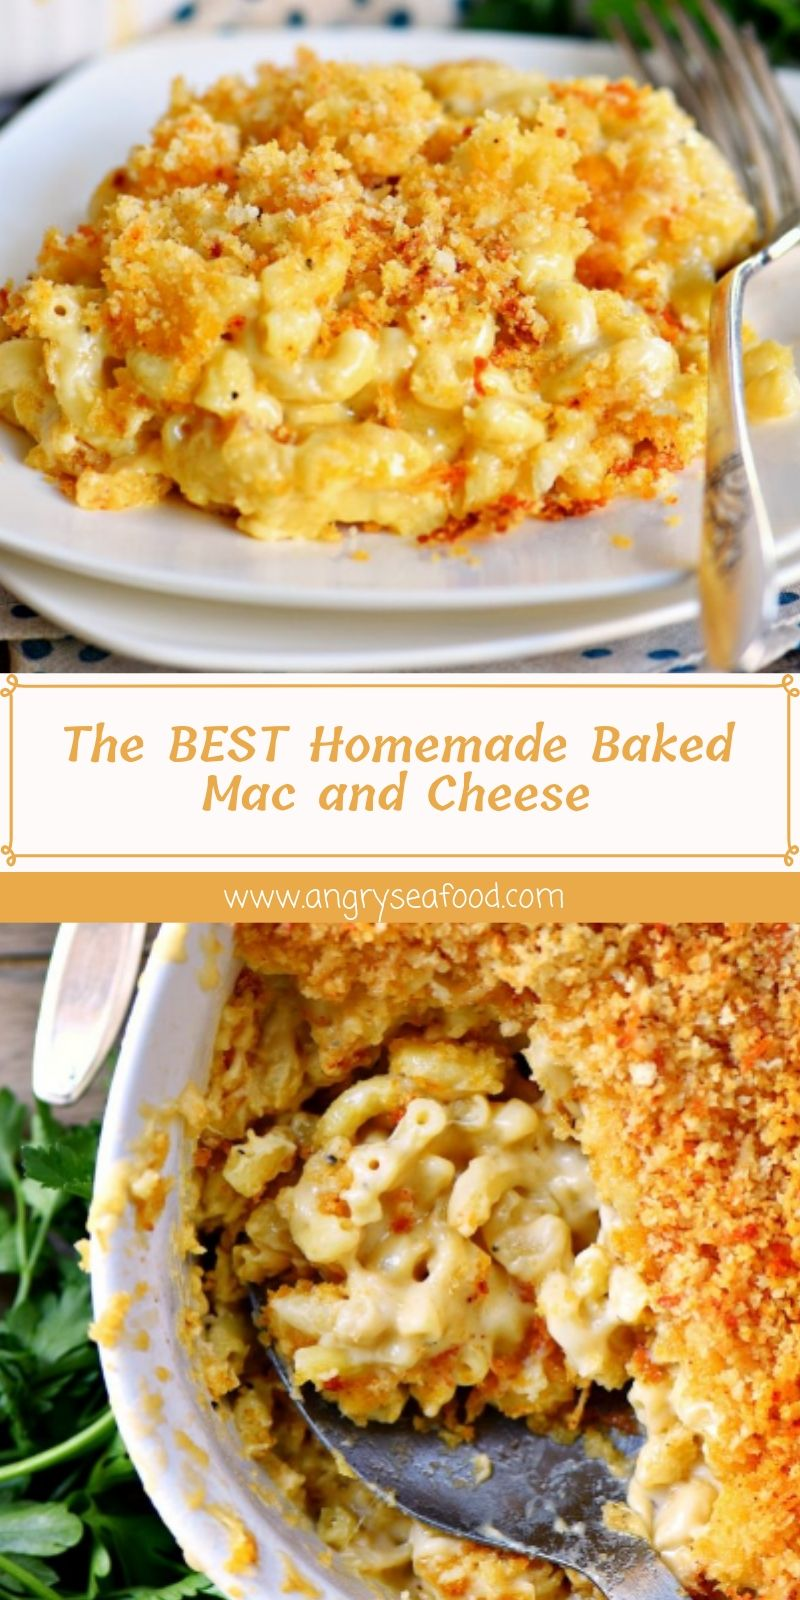 The BEST Homemade Baked Mac and Cheese #macandcheeserecipe